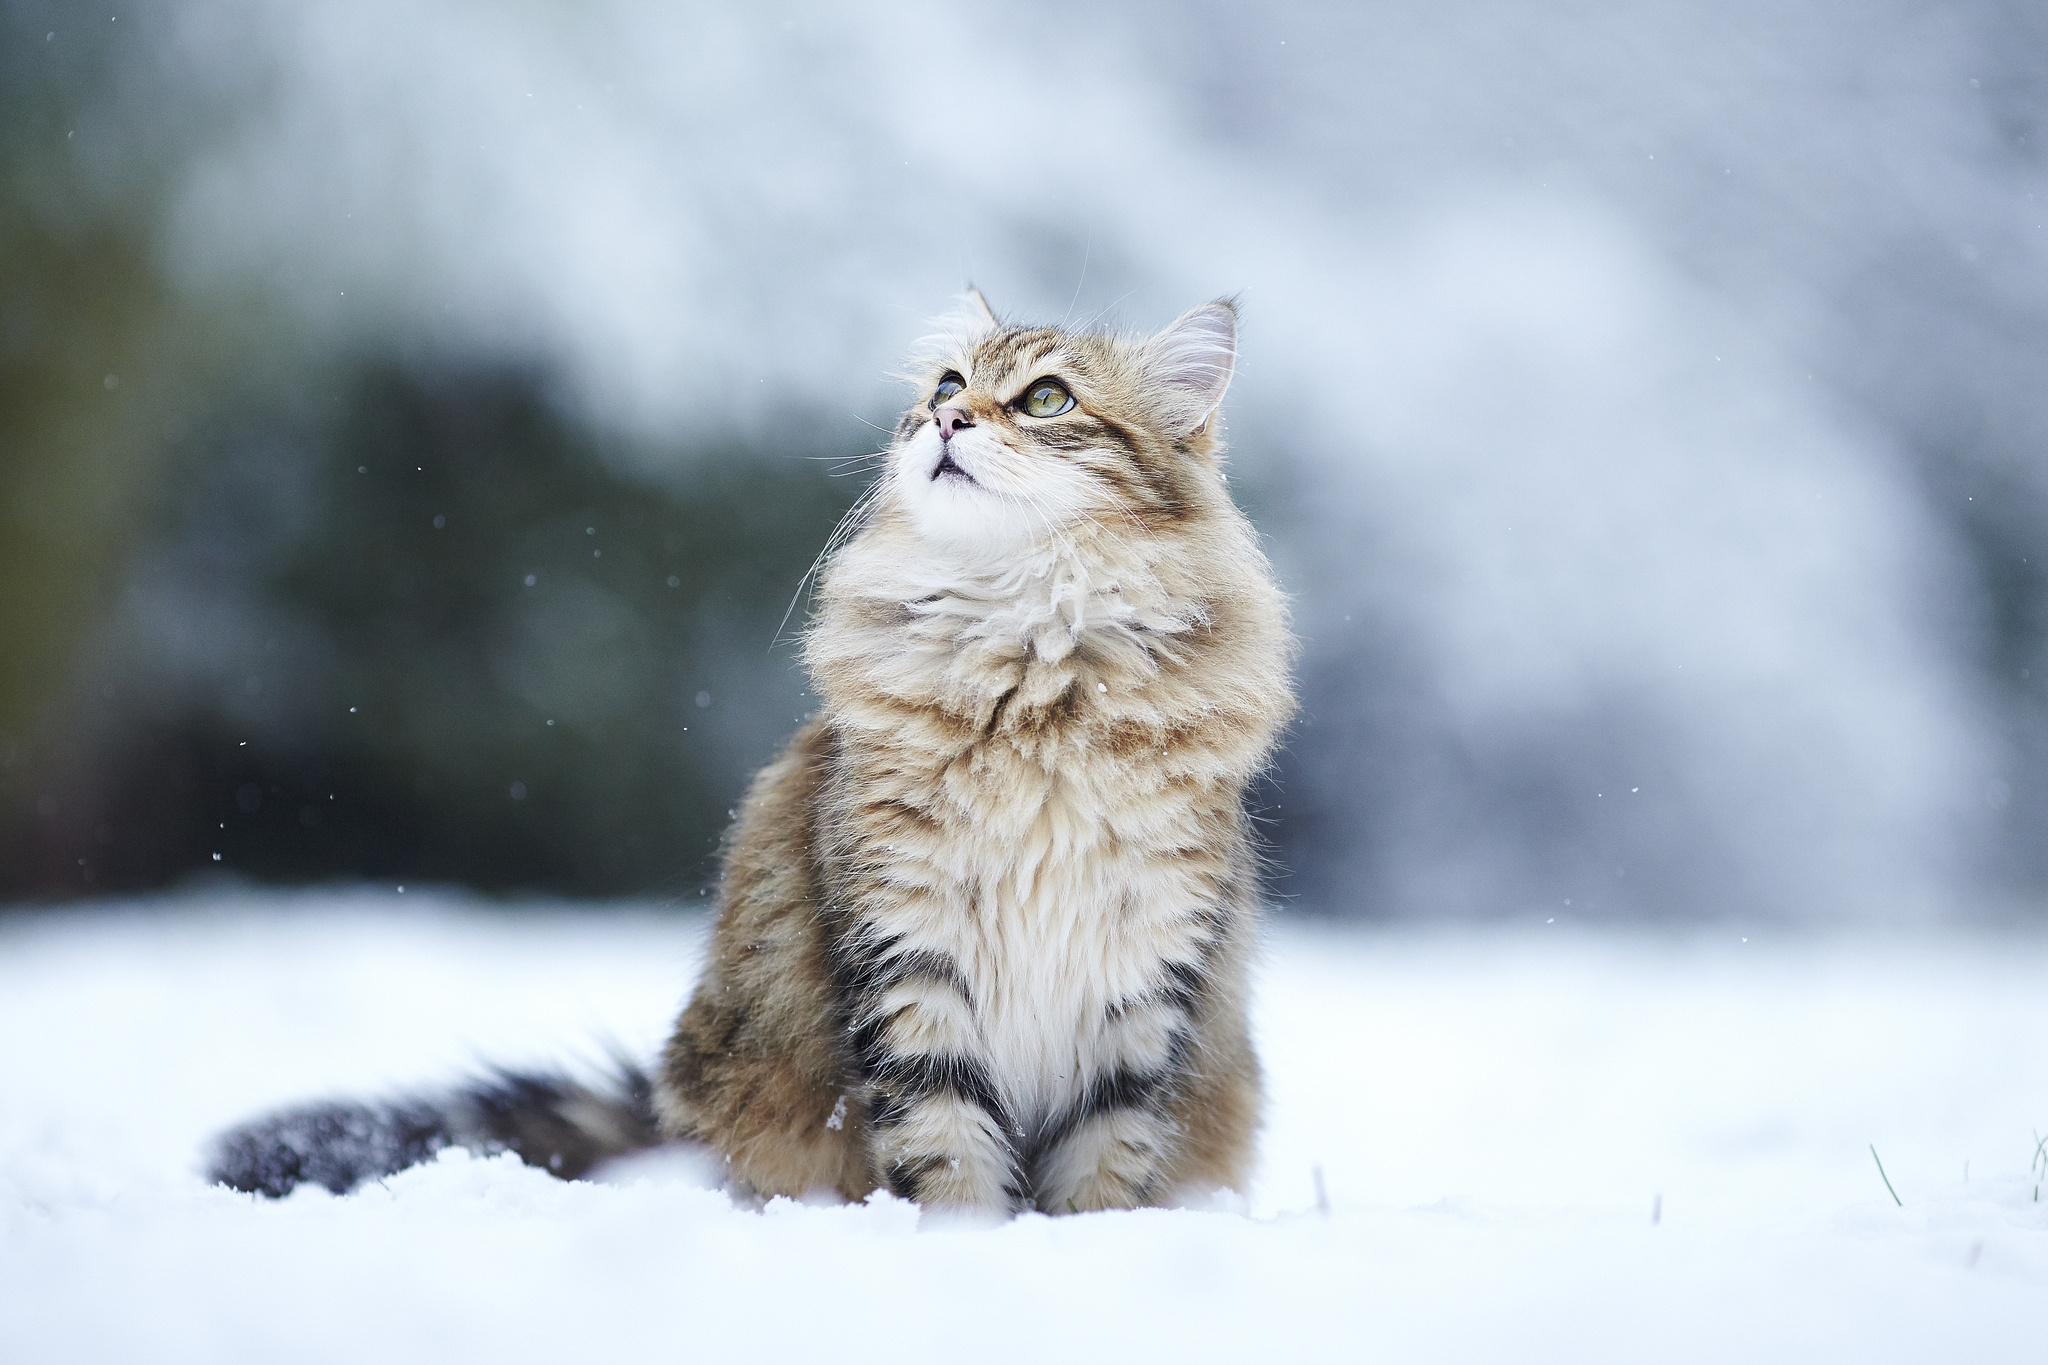 113602 Screensavers and Wallpapers Cats for phone. Download Animals, Cats, Fluffy, Snow, Blur, Smooth pictures for free